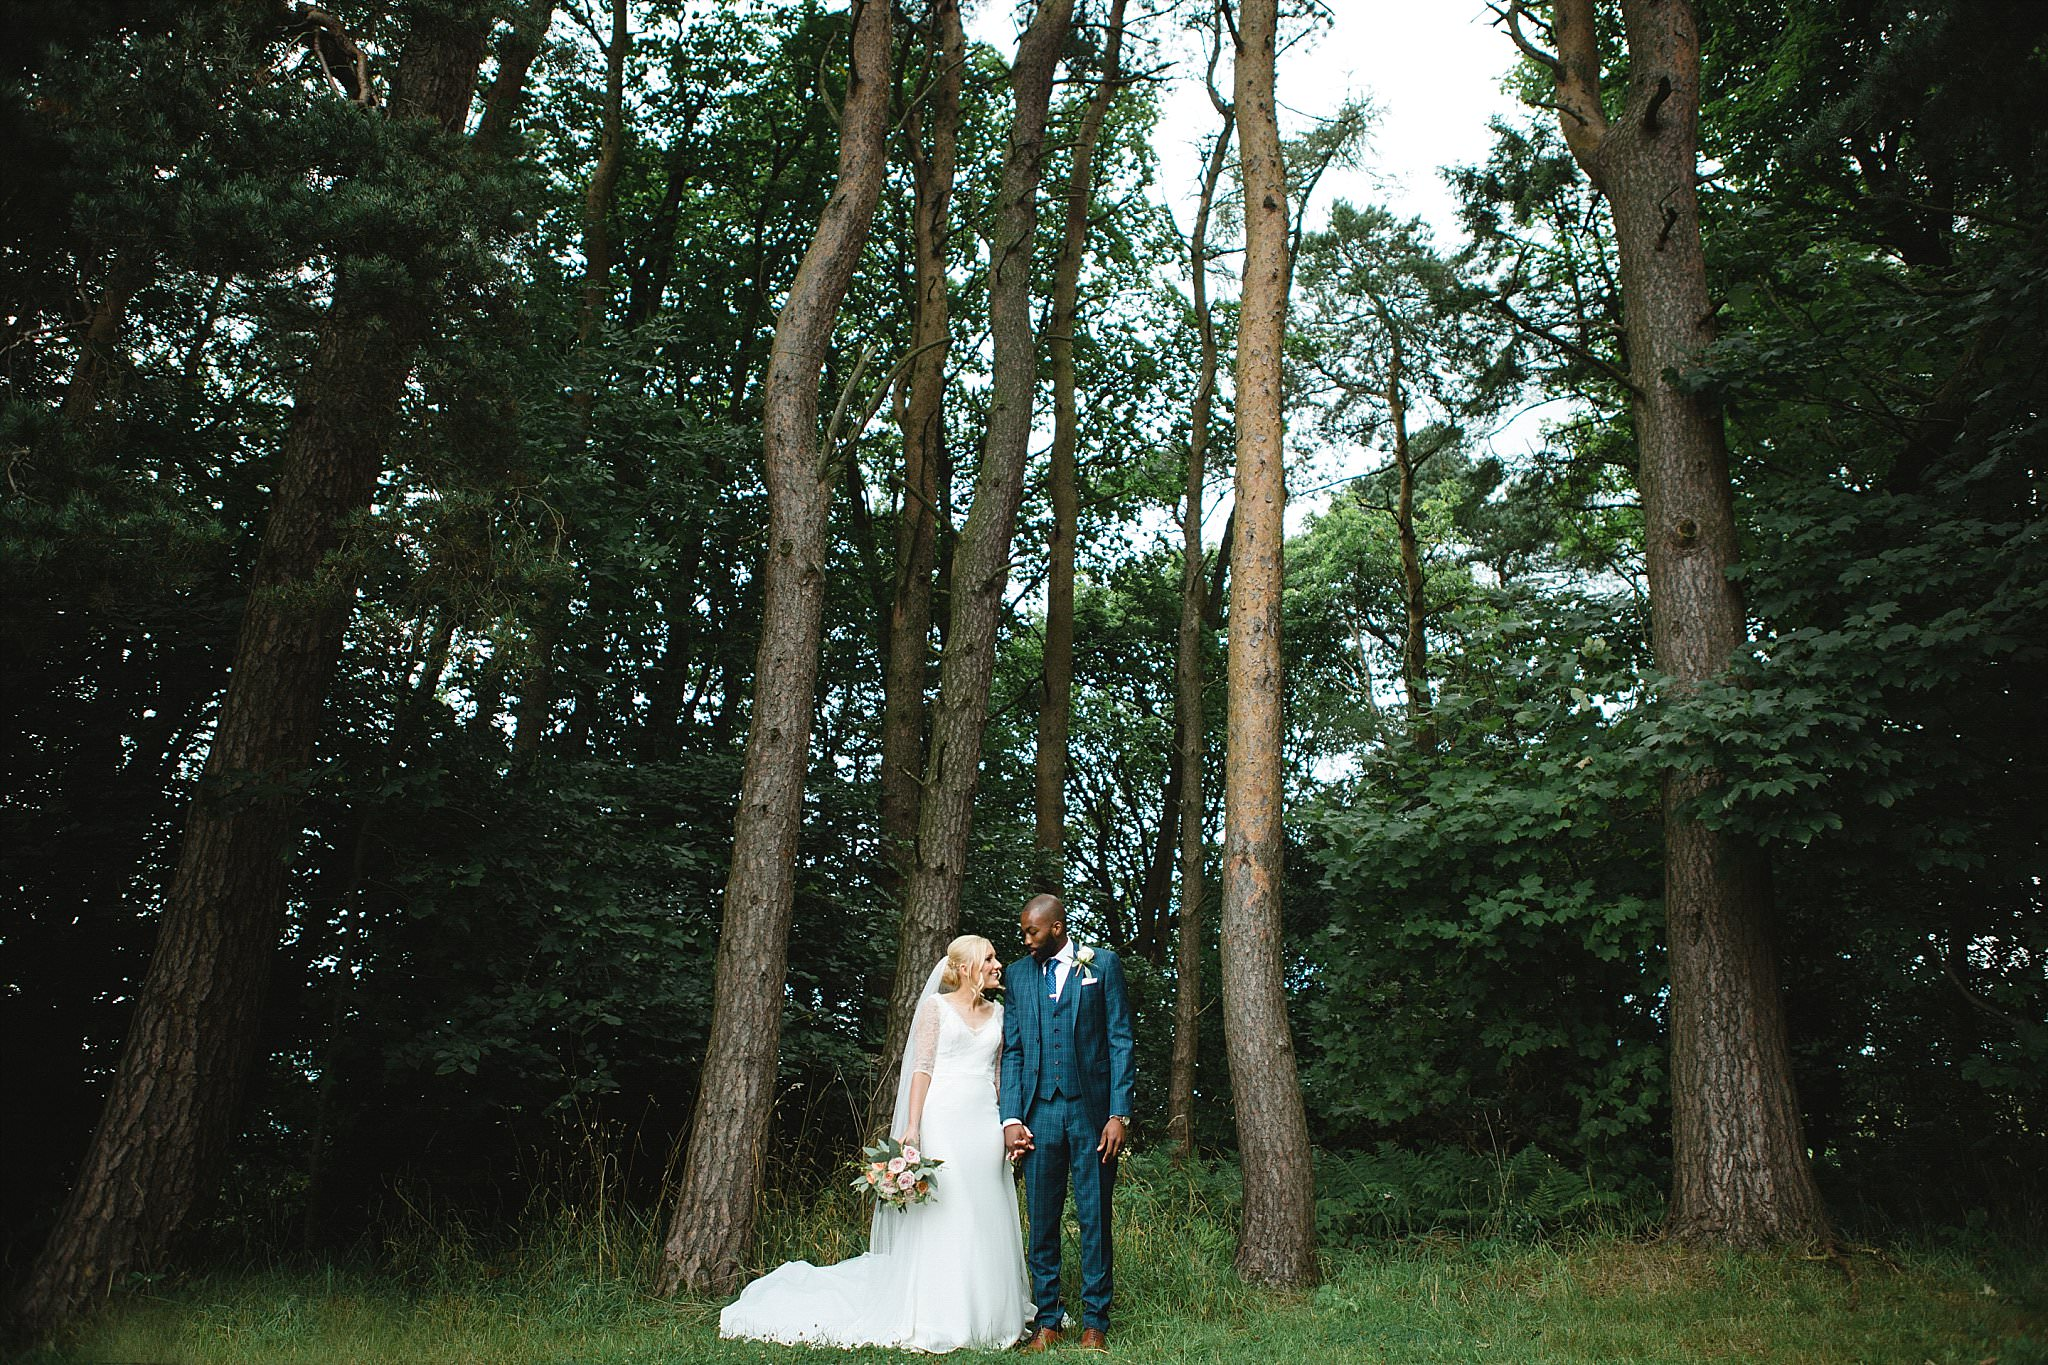 Fine Art Wedding Photographers,The Gibsons,elegant wedding photographers glasgow,glasgow wedding photographe: glasgow wedding photographers,husband and wife photographers scotland,natural wedding photographers,romantic photographers Scotland,soft wedding photographers,